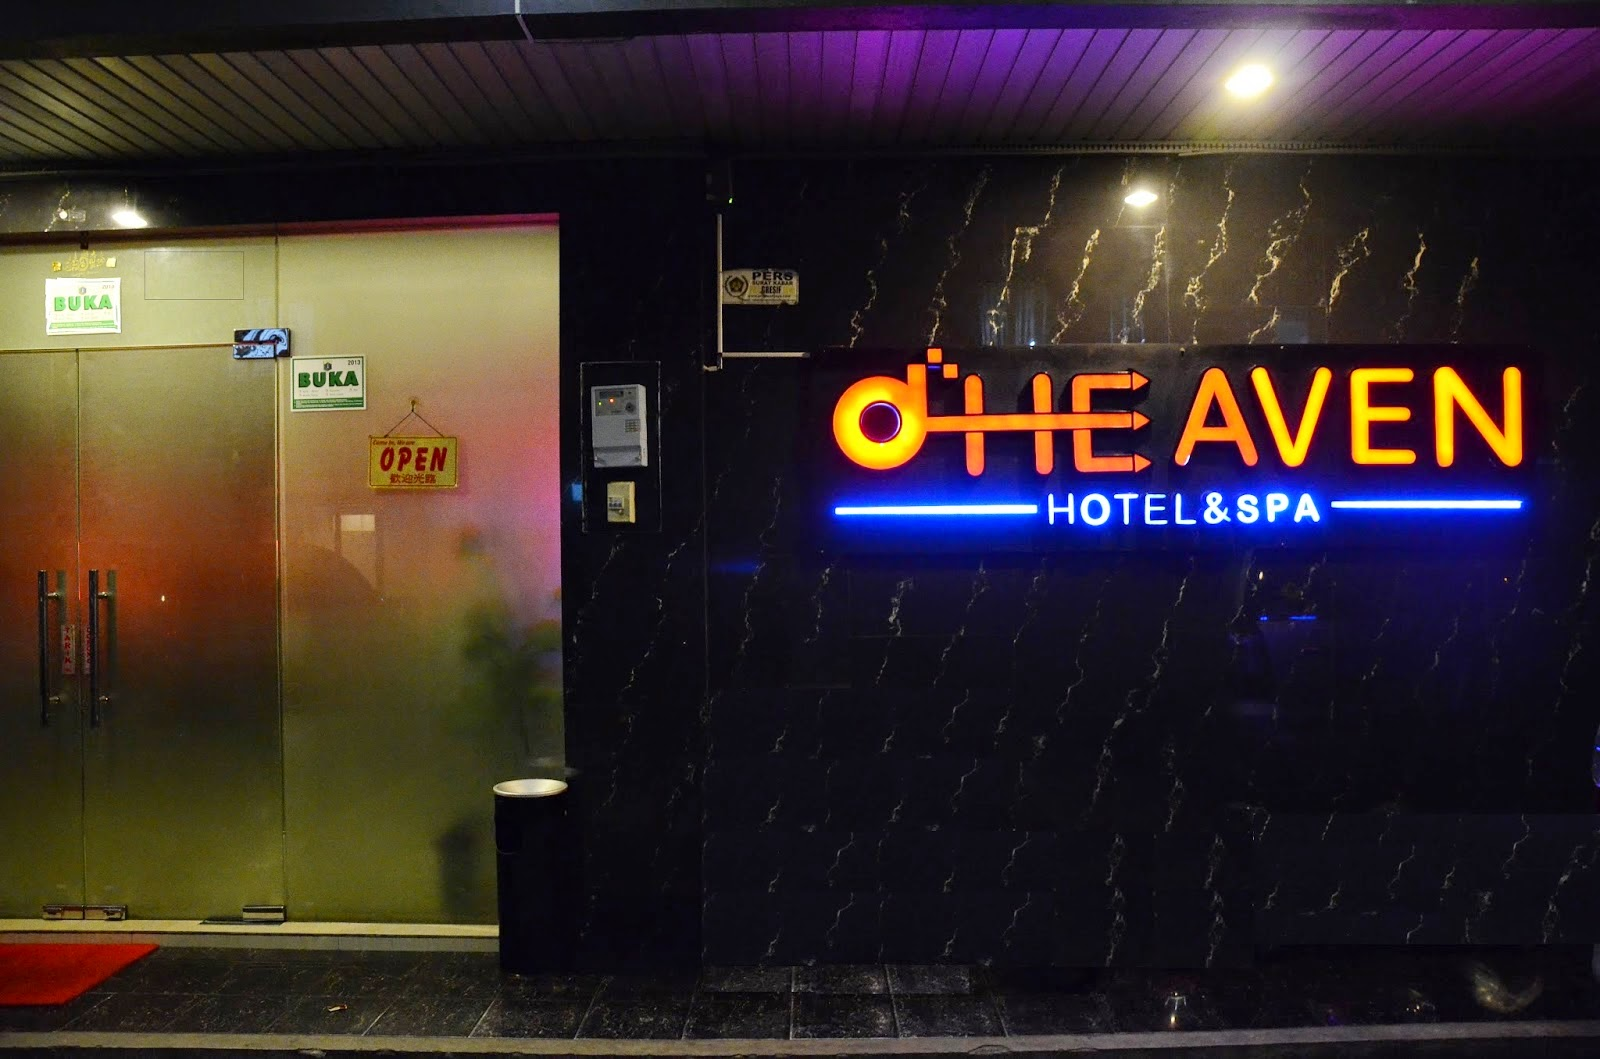 D'Heaven Hotel And Spa | Jakarta100bars Nightlife Reviews